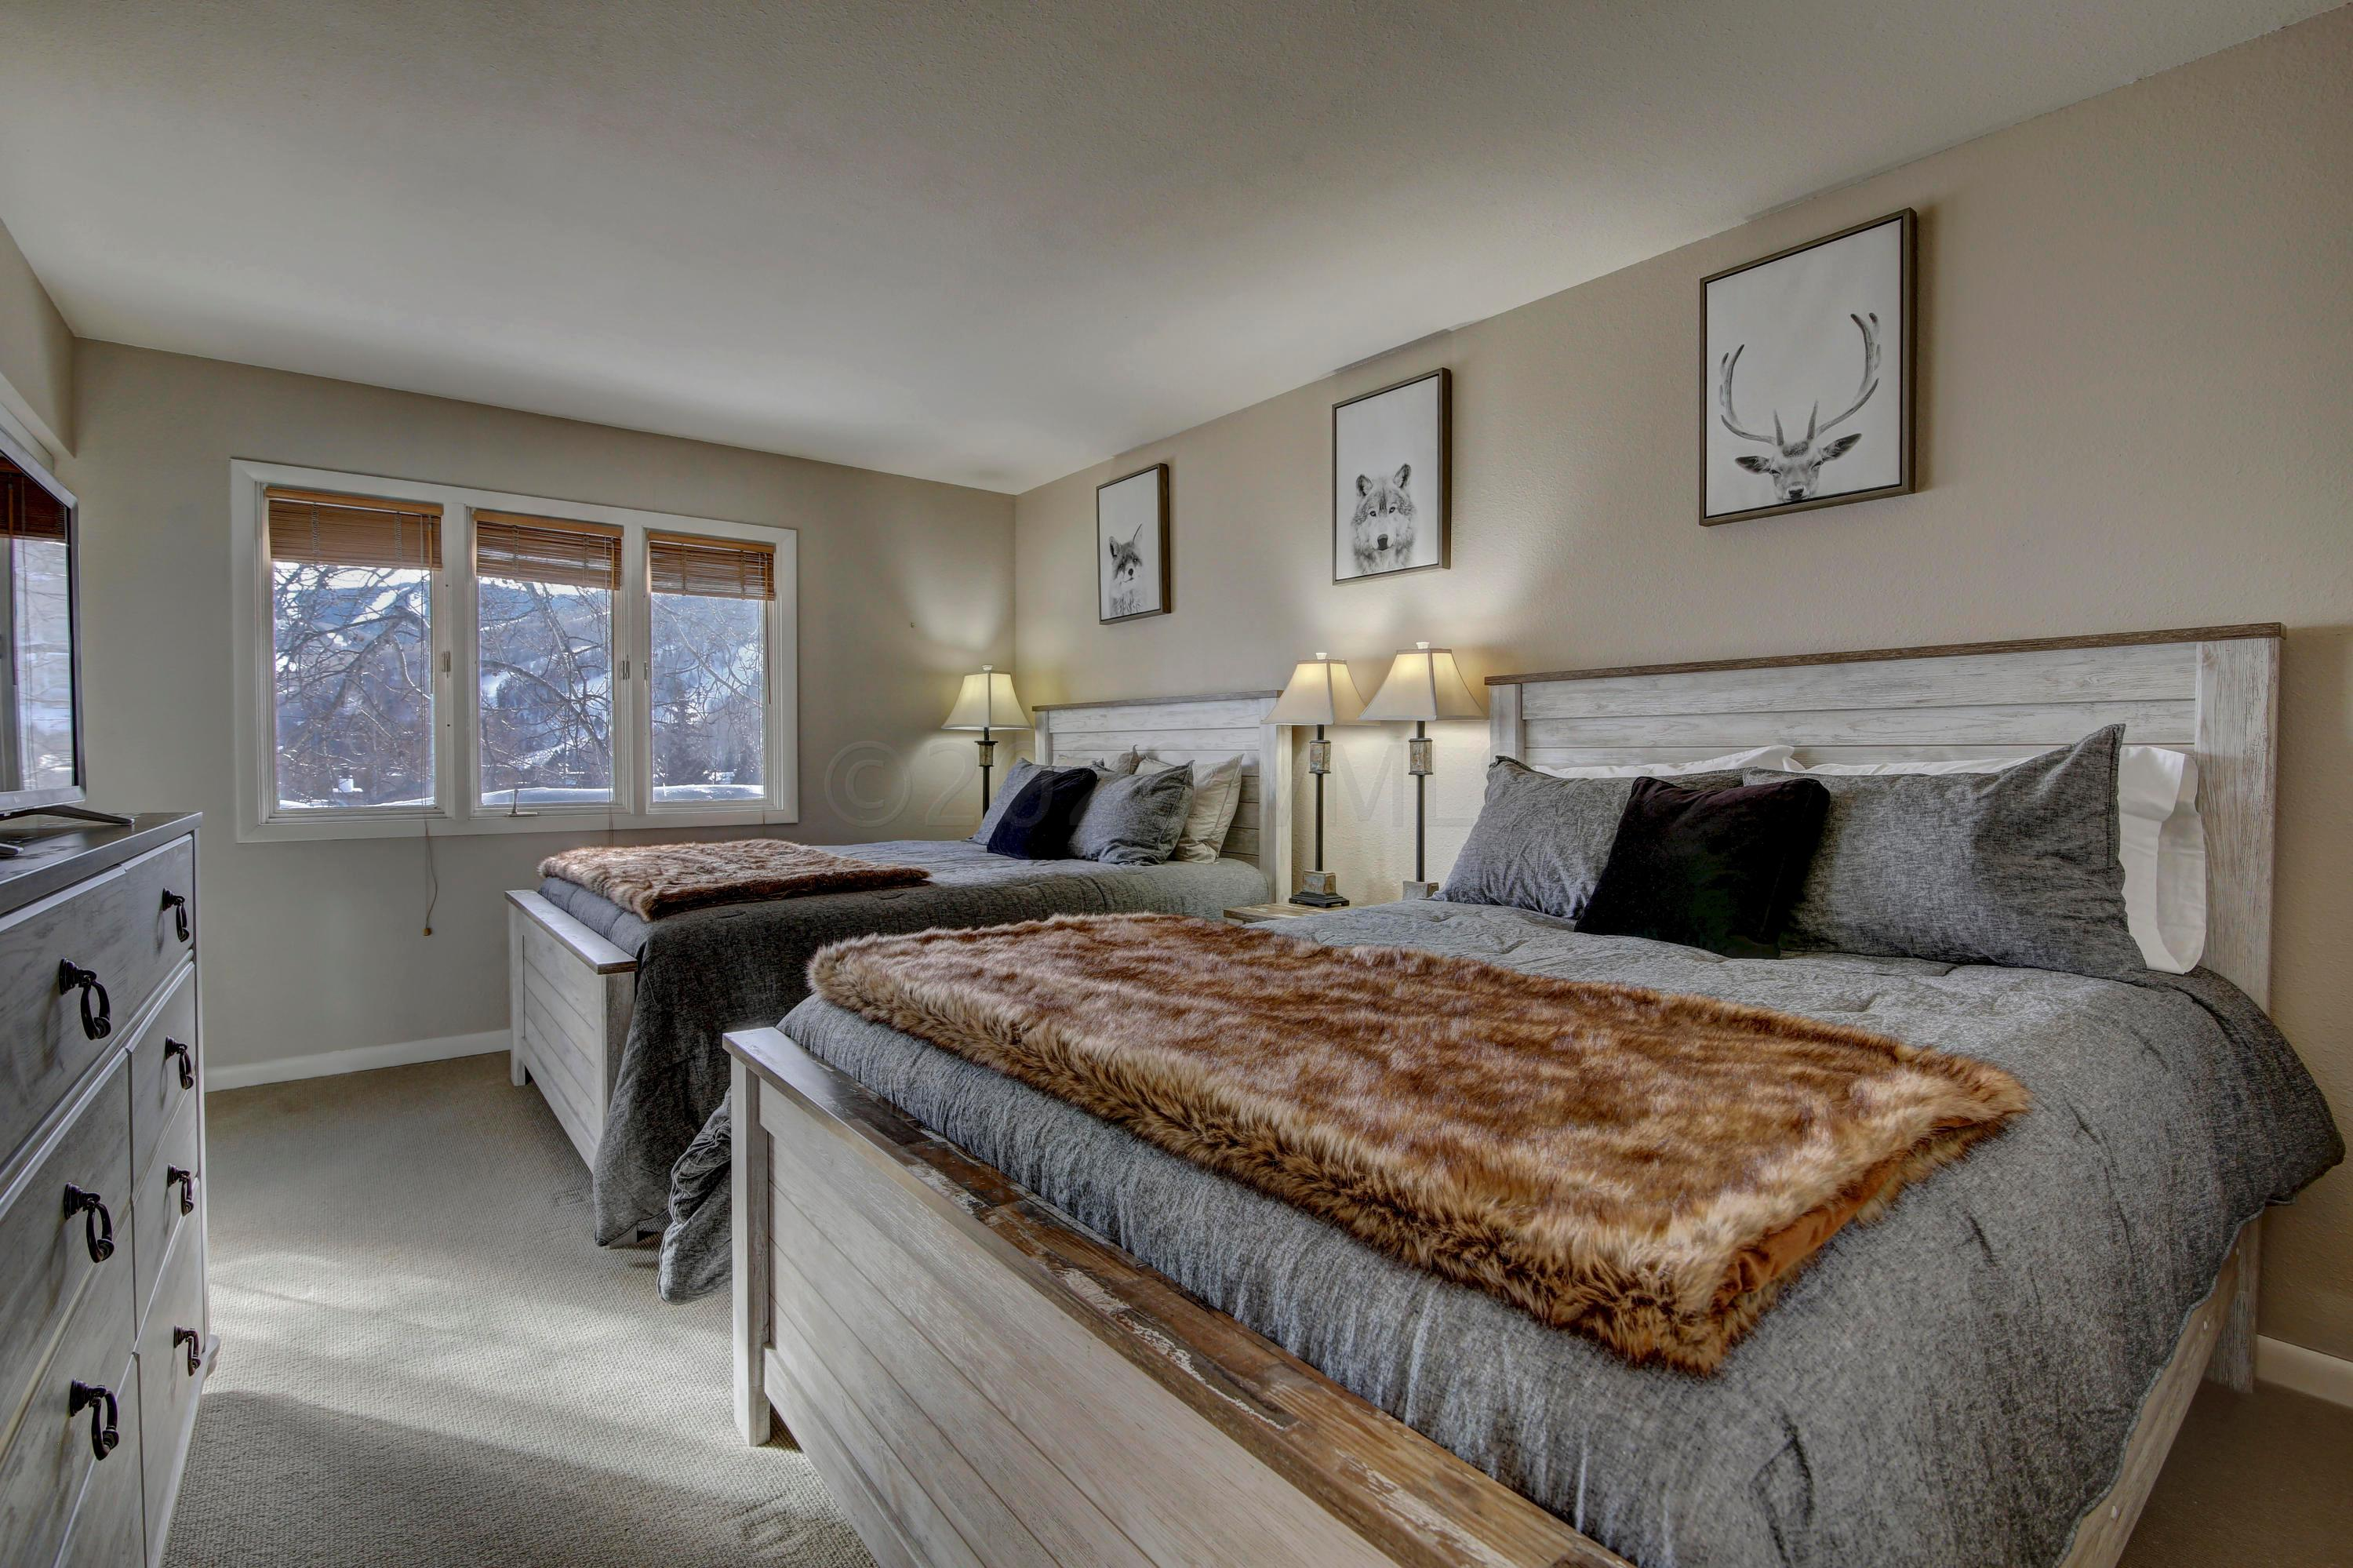 980 Vail View Drive, 206 A, Vail, CO 81657 Property Photo - Vail, CO real estate listing